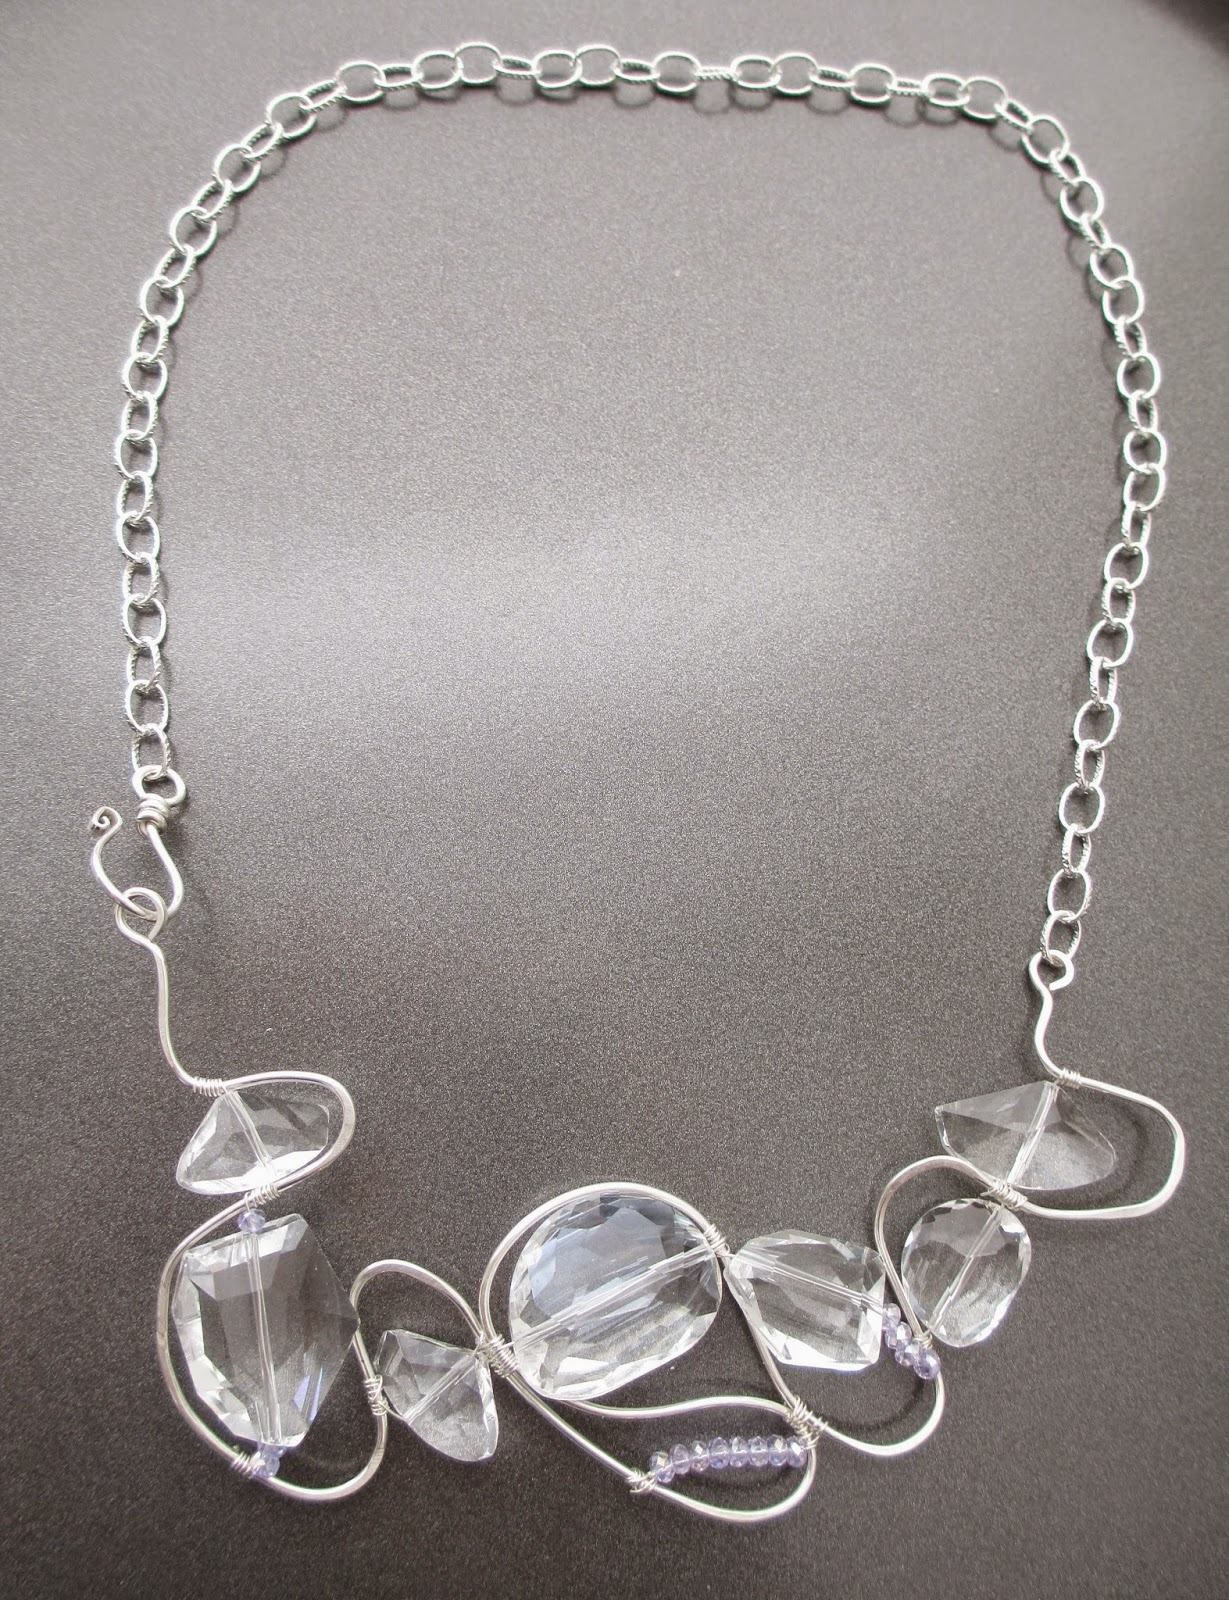 Fall 2013 Crystal Weave Necklace by Bobbie Rafferty